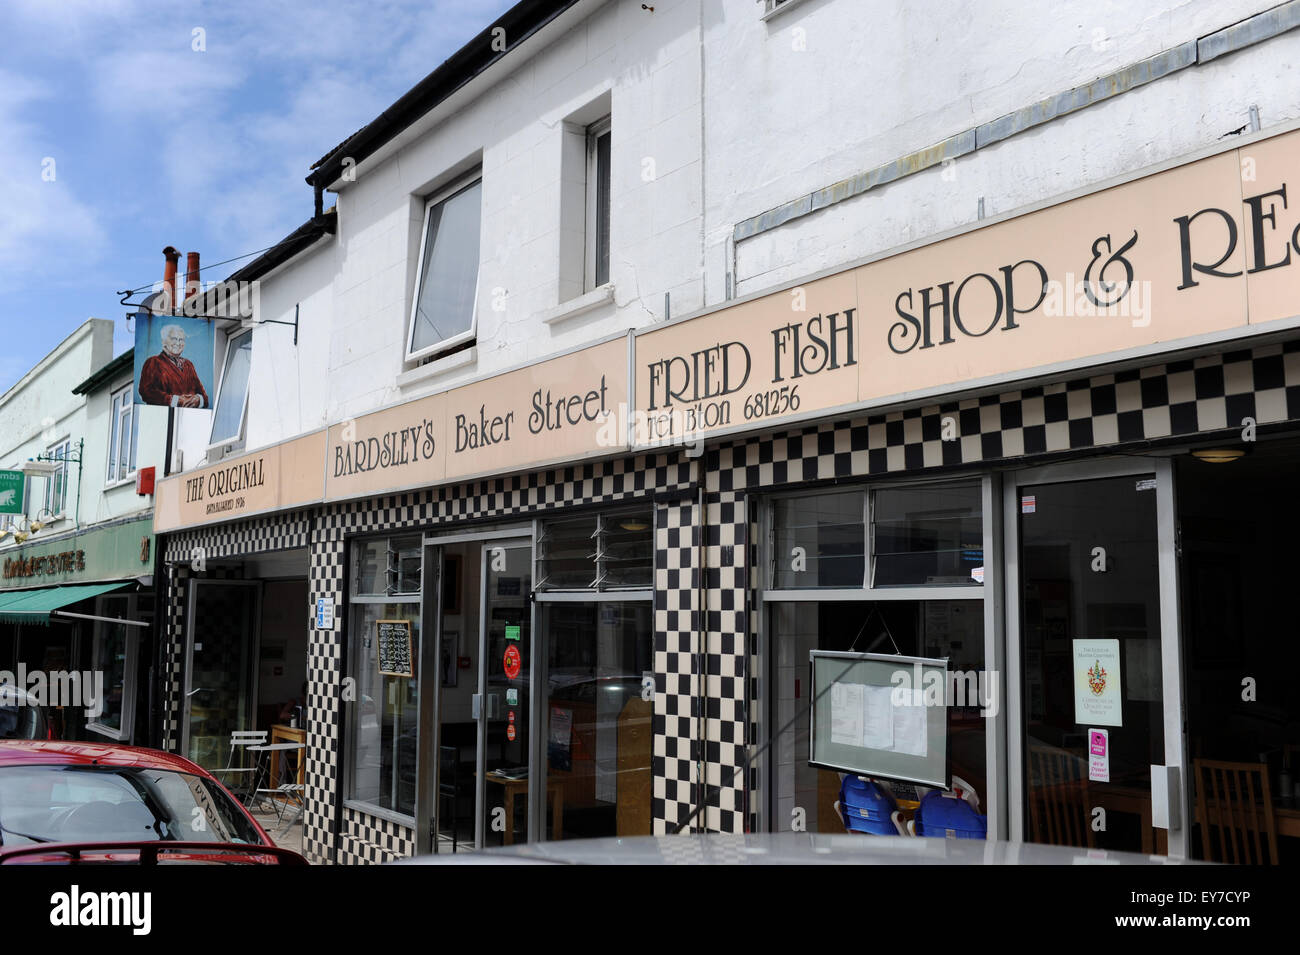 The famous bardsley 39 s fried fish shop and restaurant in for Fried fish restaurants